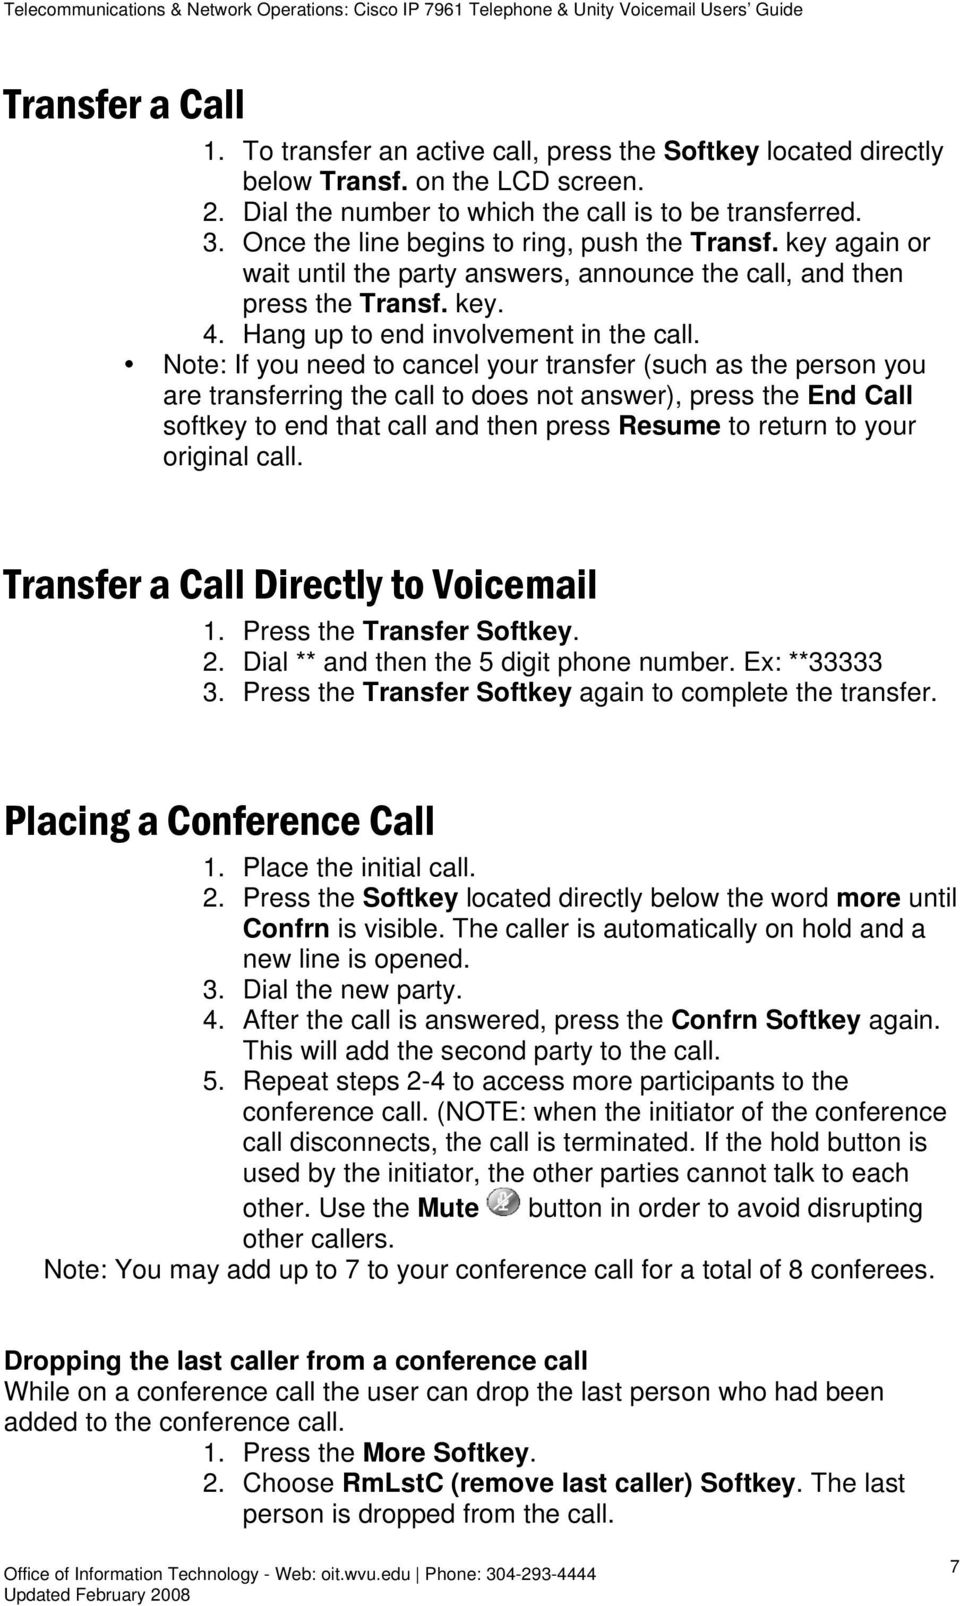 Note: If you need to cancel your transfer (such as the person you are transferring the call to does not answer), press the End Call softkey to end that call and then press Resume to return to your